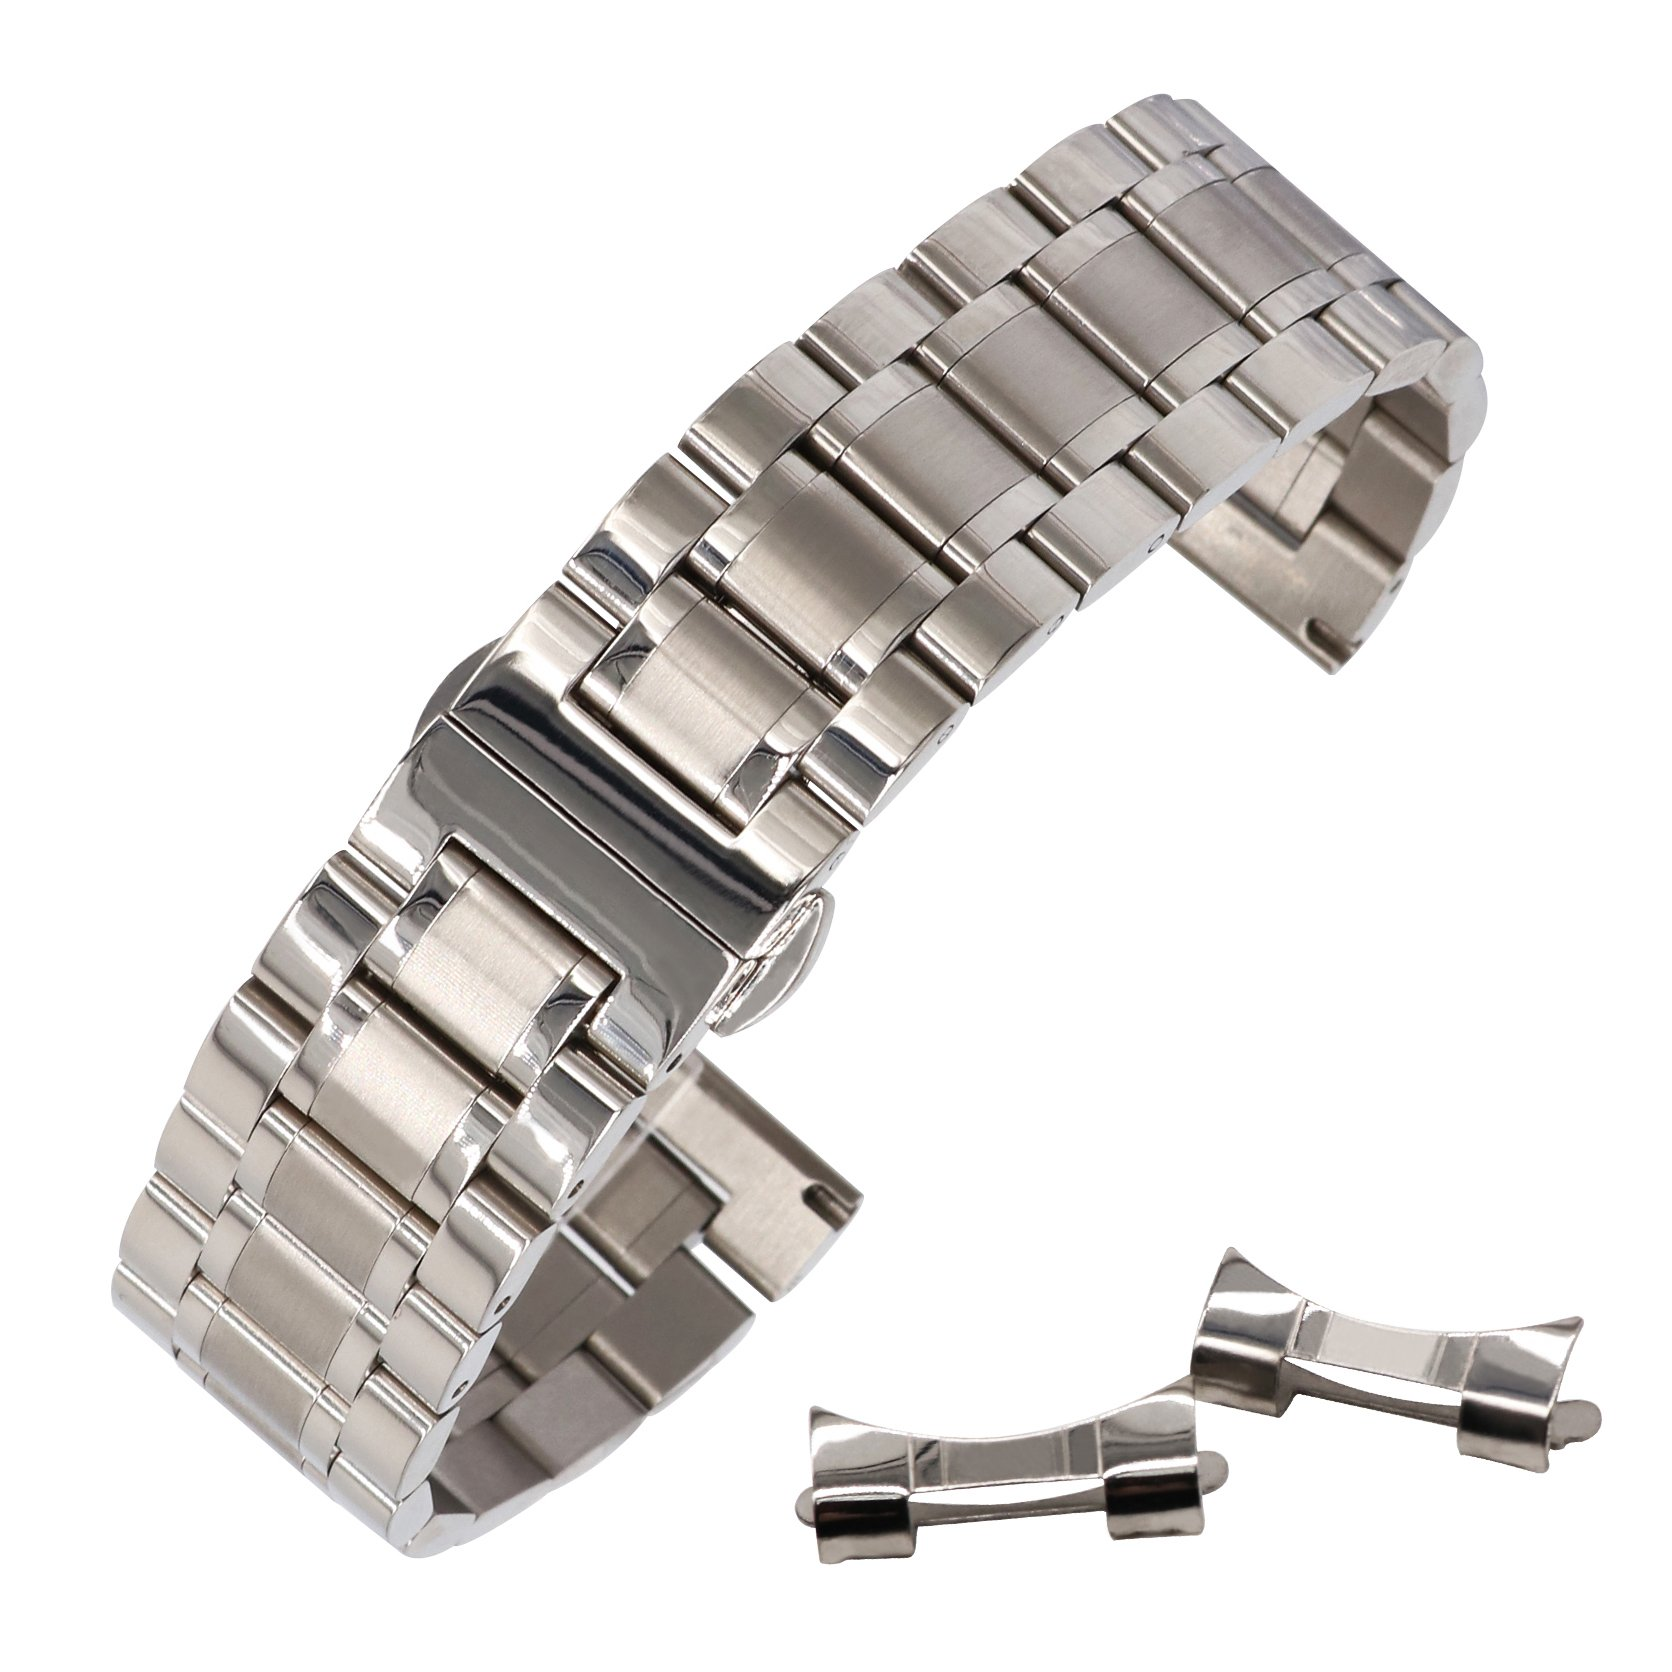 14mm Curved End Wrist Watch Strap Replacement Straight End Watch Bands Solid Stainless Steel in Silver